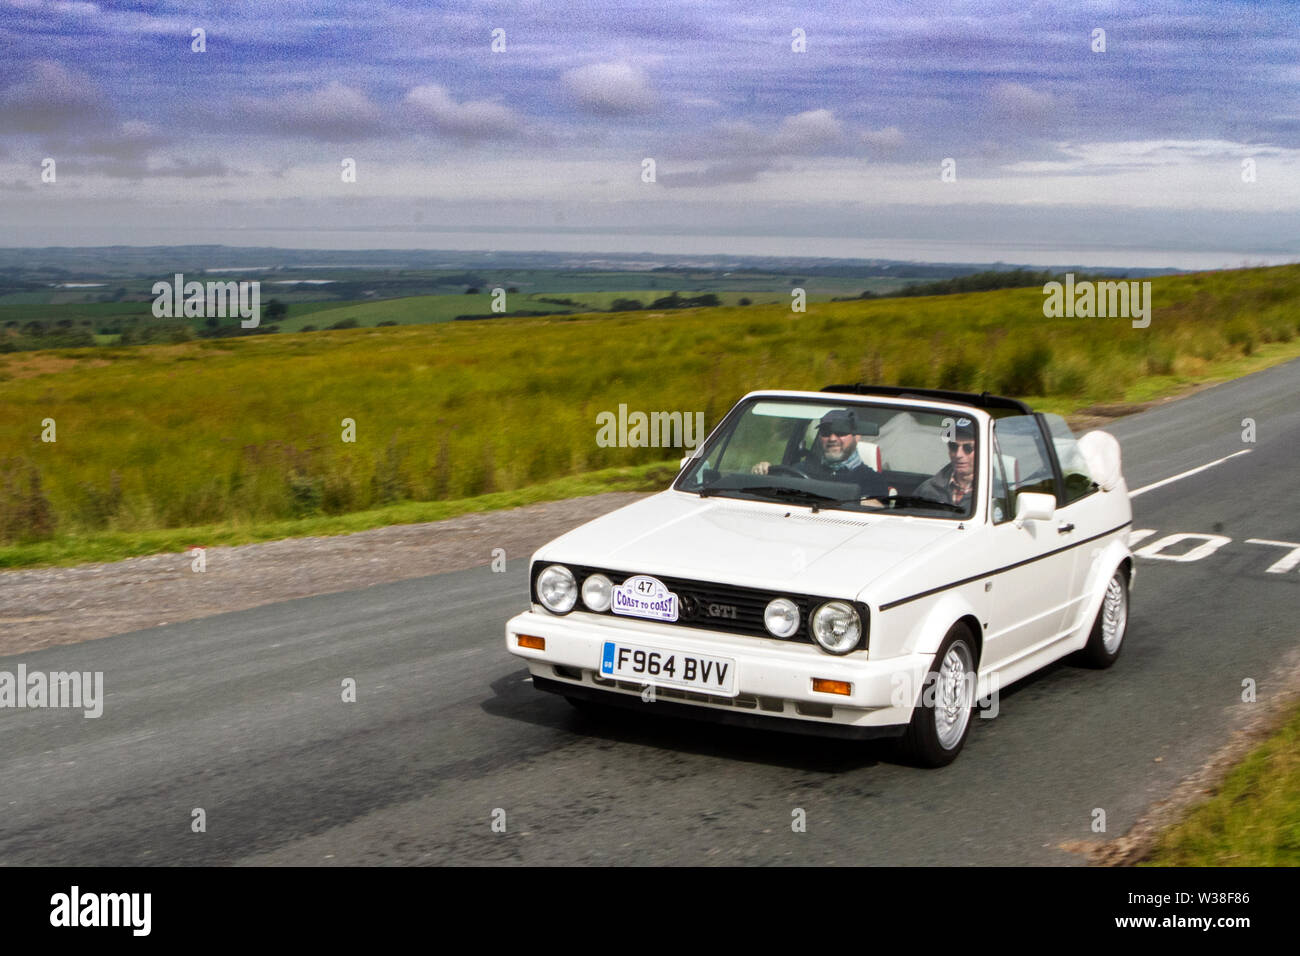 Golf Convertible Stock Photos & Golf Convertible Stock Images - Alamy